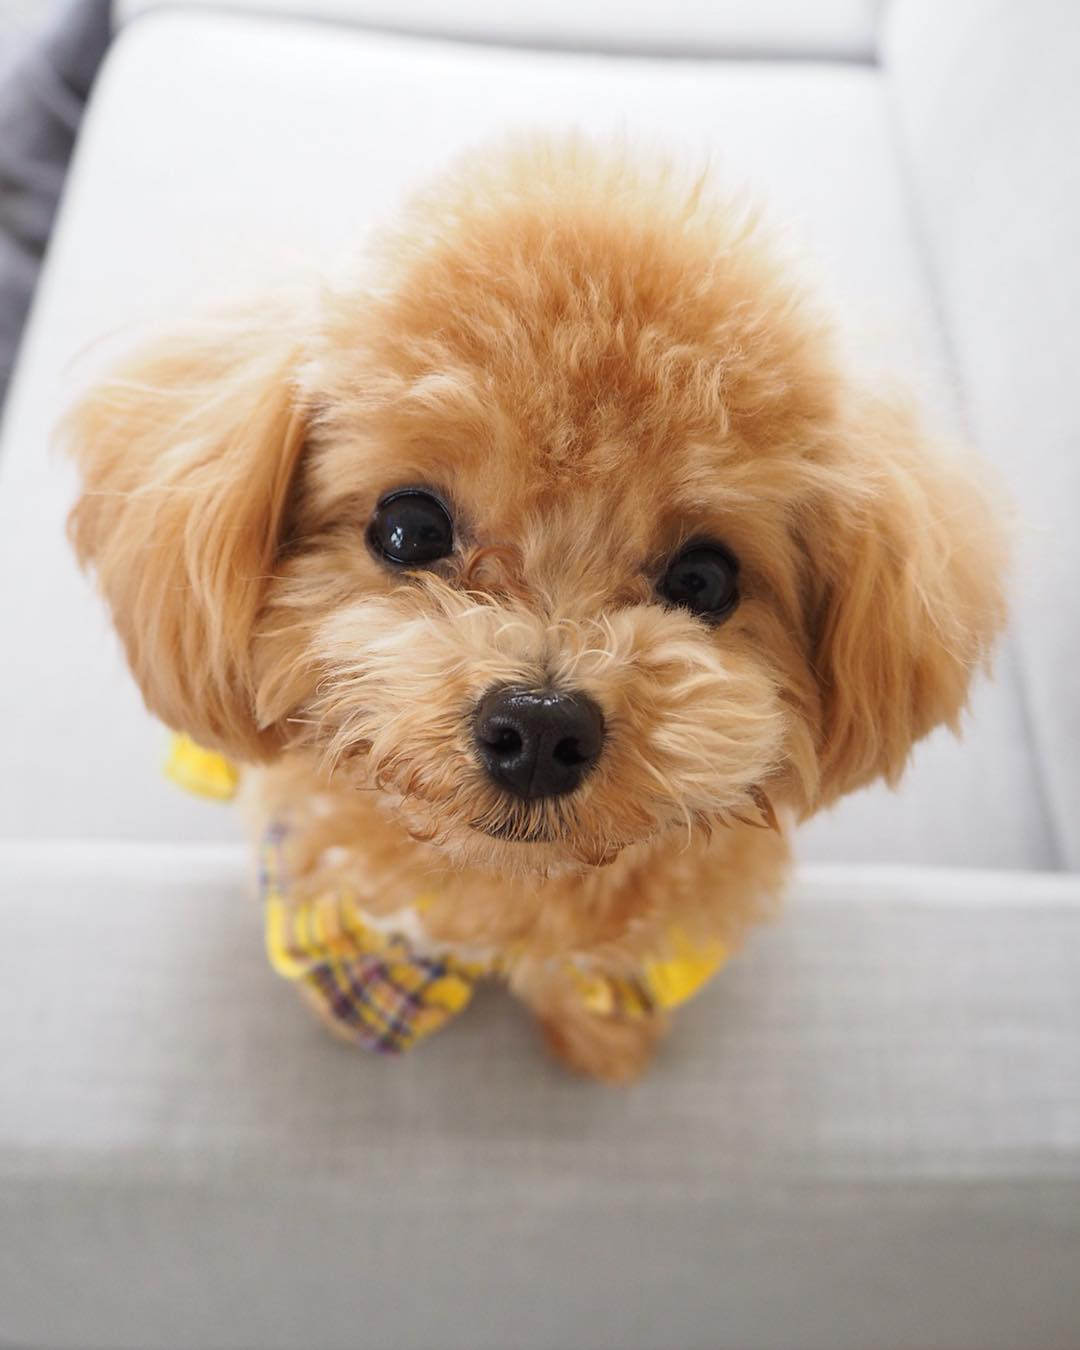 What to Do When Your Poodle Has an Ear Infection